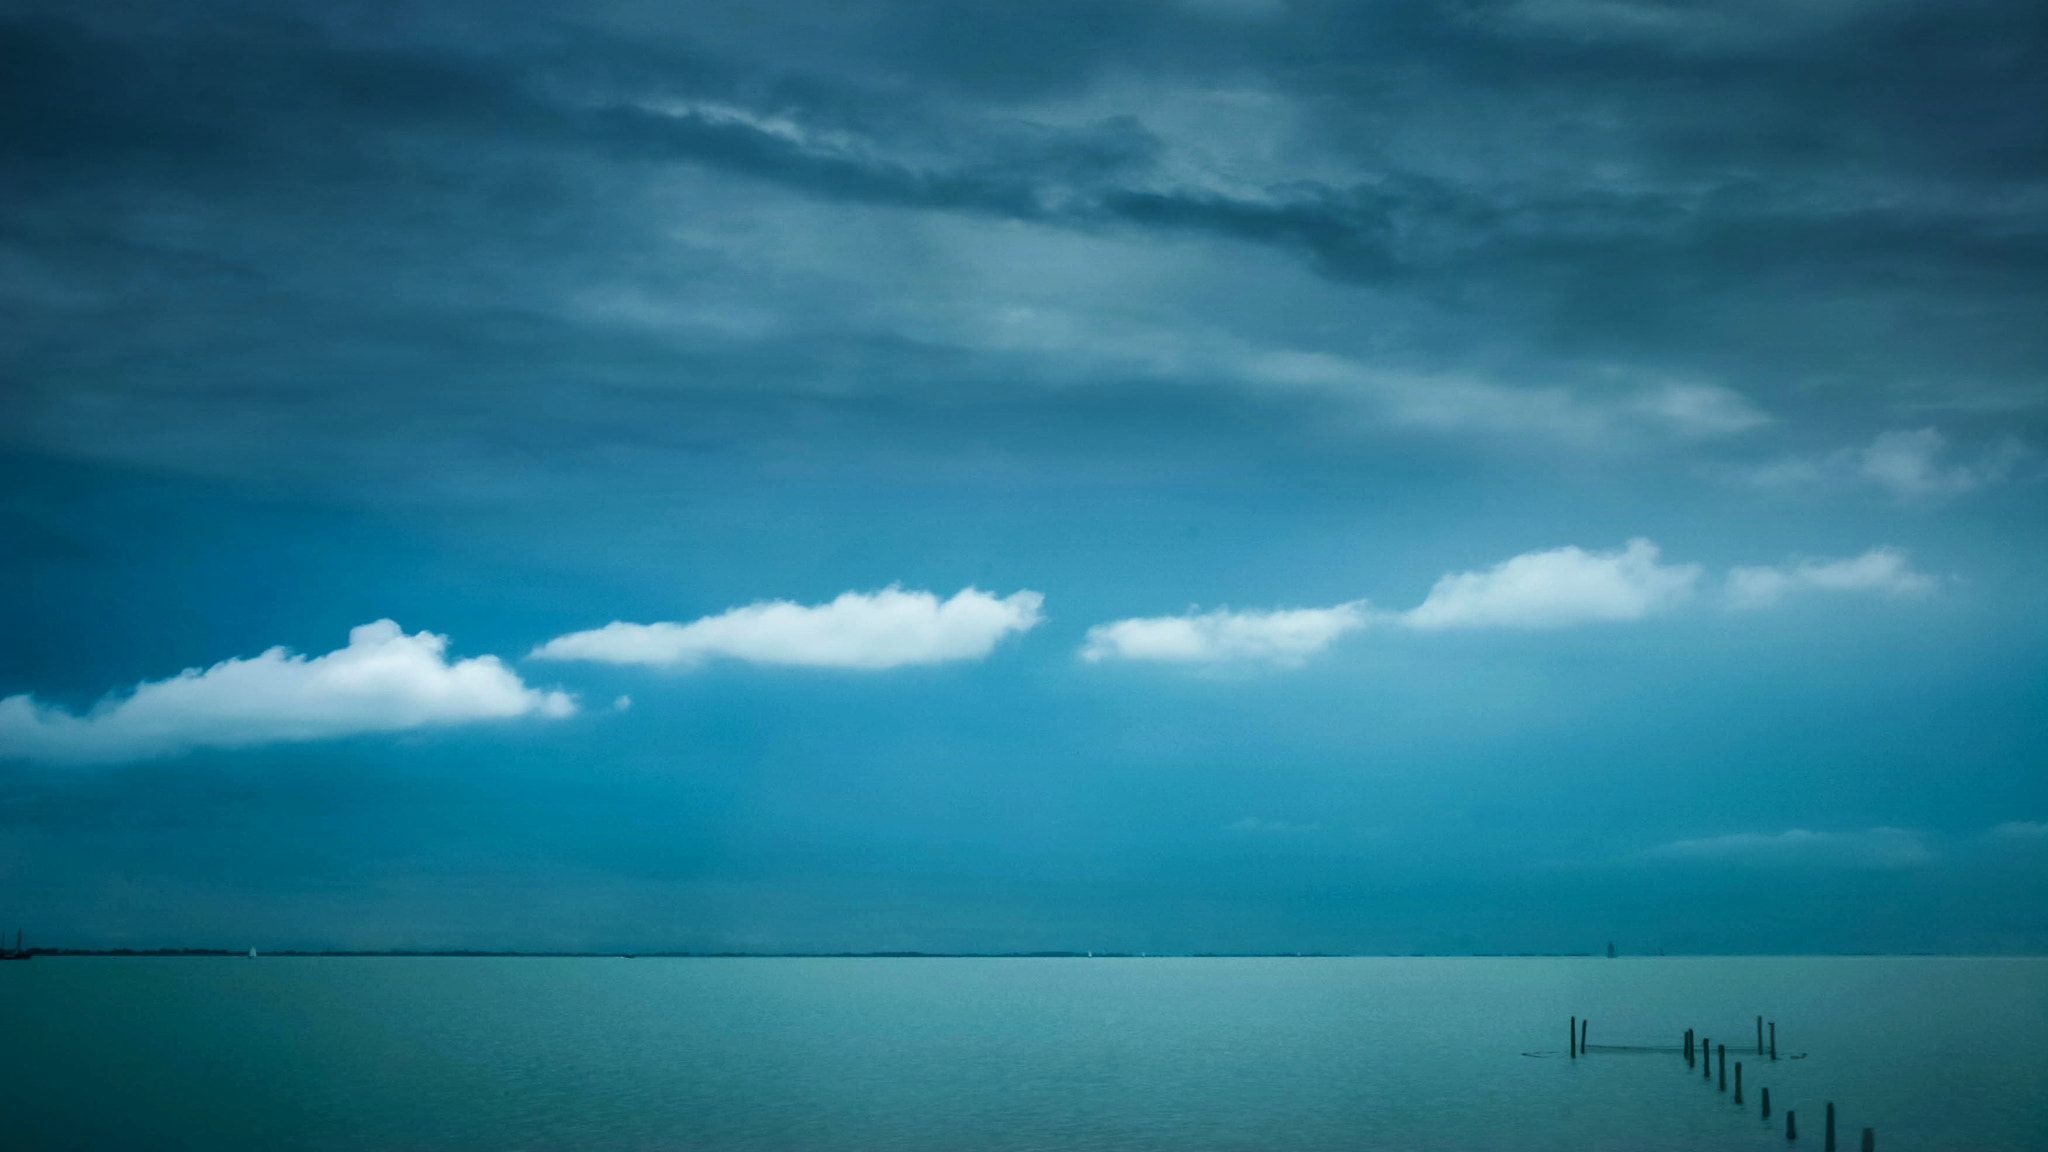 Photograph Calm Sea by Lorenz Kort on 500px